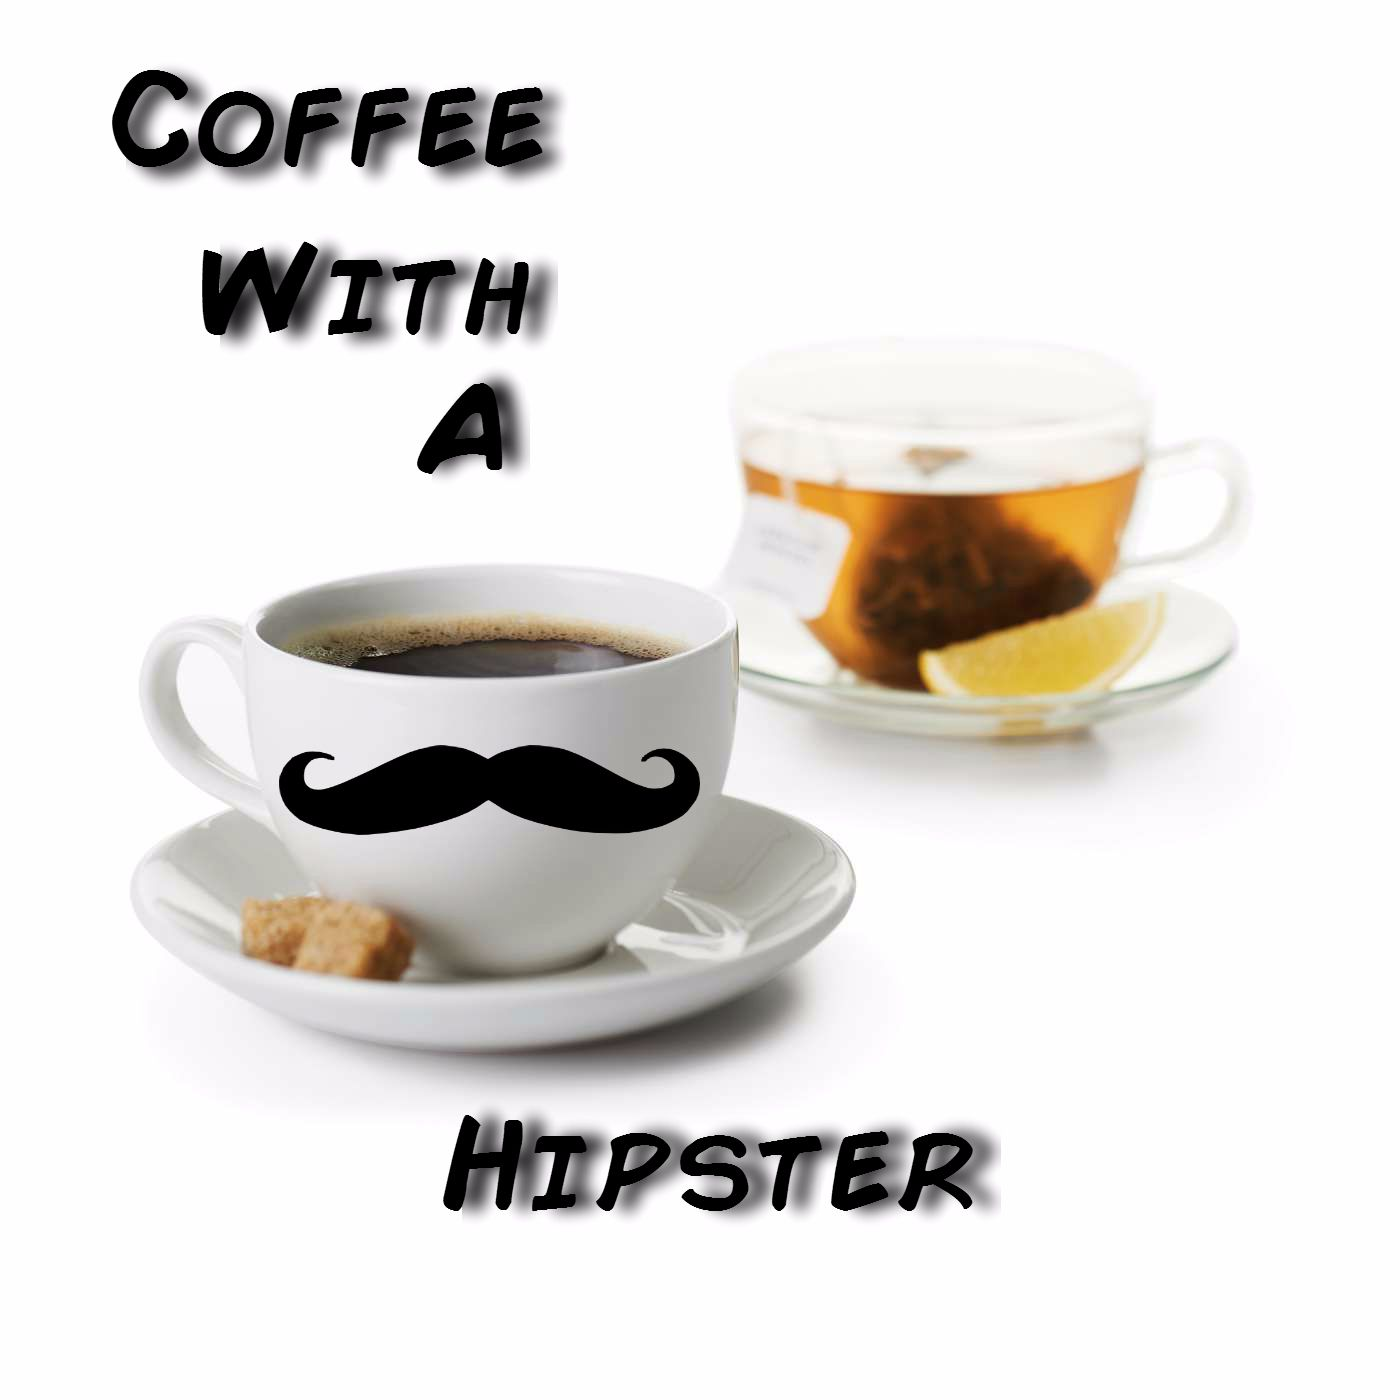 Coffee With a Hipster